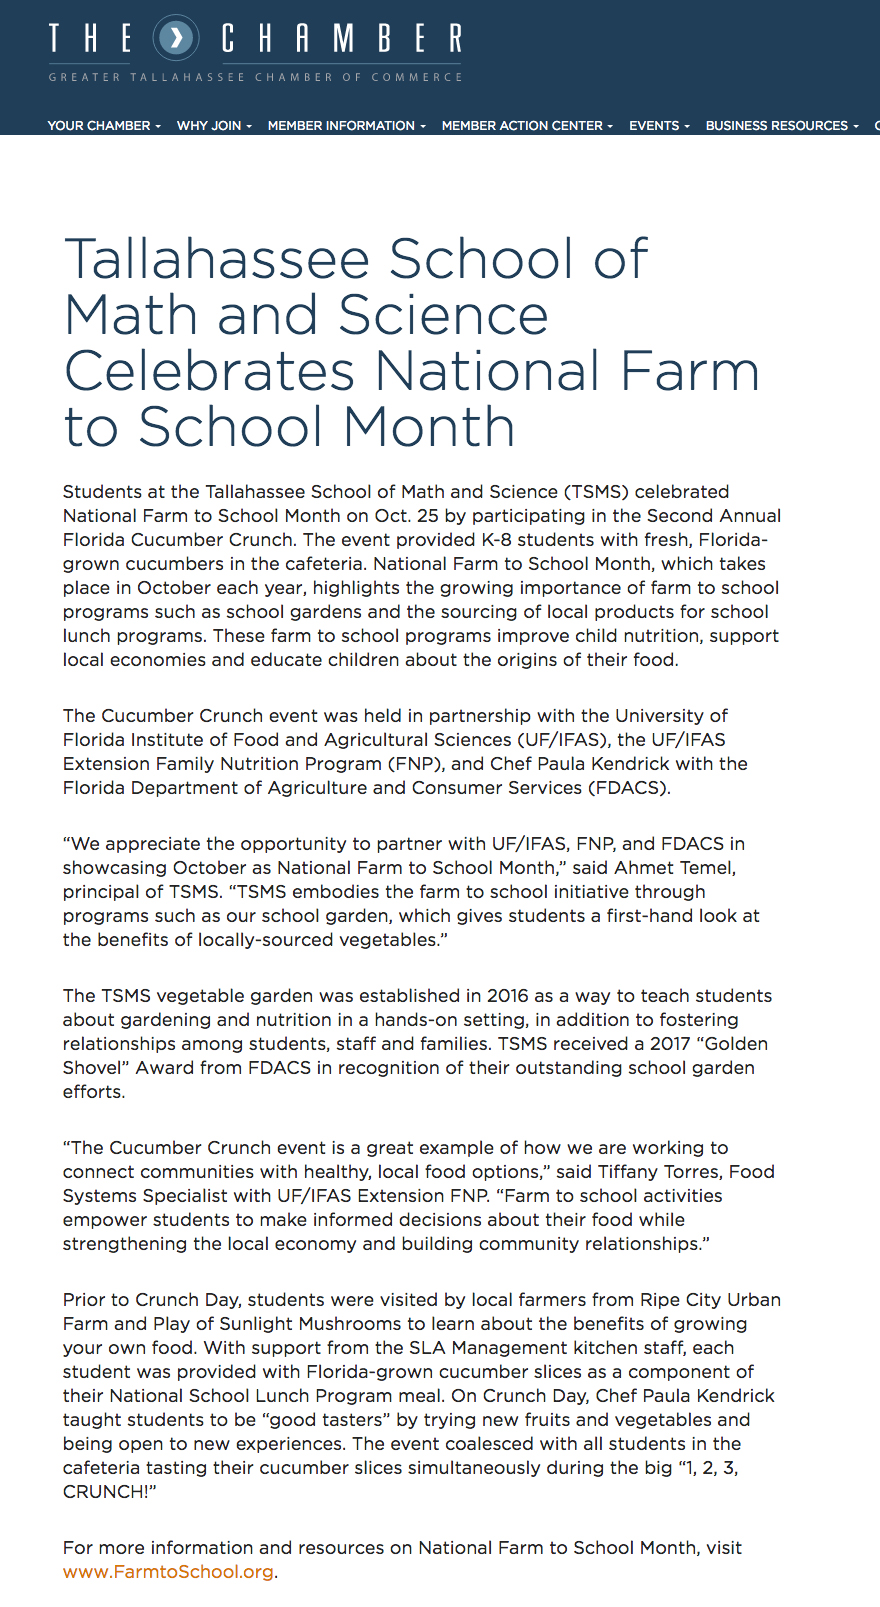 National Farm to School Month